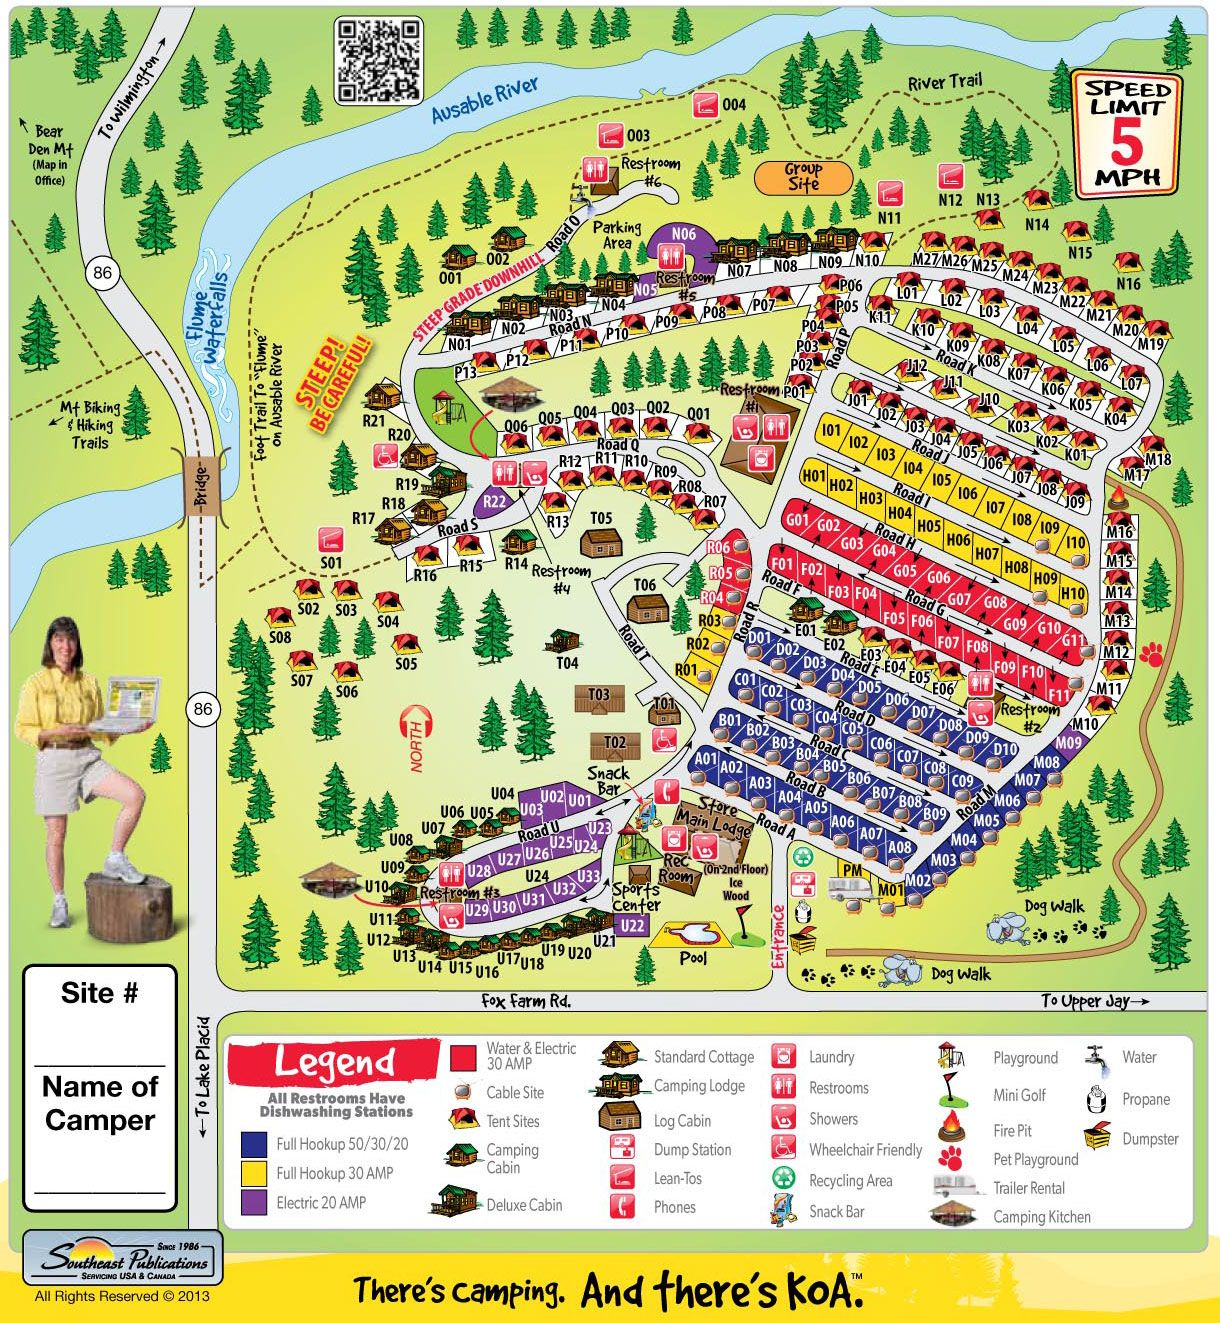 Campground Site Map - Lake Placid KOA | Campgrounds | Campsite, Rv on scott louisiana map, koa oklahoma map, manchester california map, tower park koa map, scott koa campground map, petaluma koa map, koa camping map of georgia, koa arizona map, koa in usa,